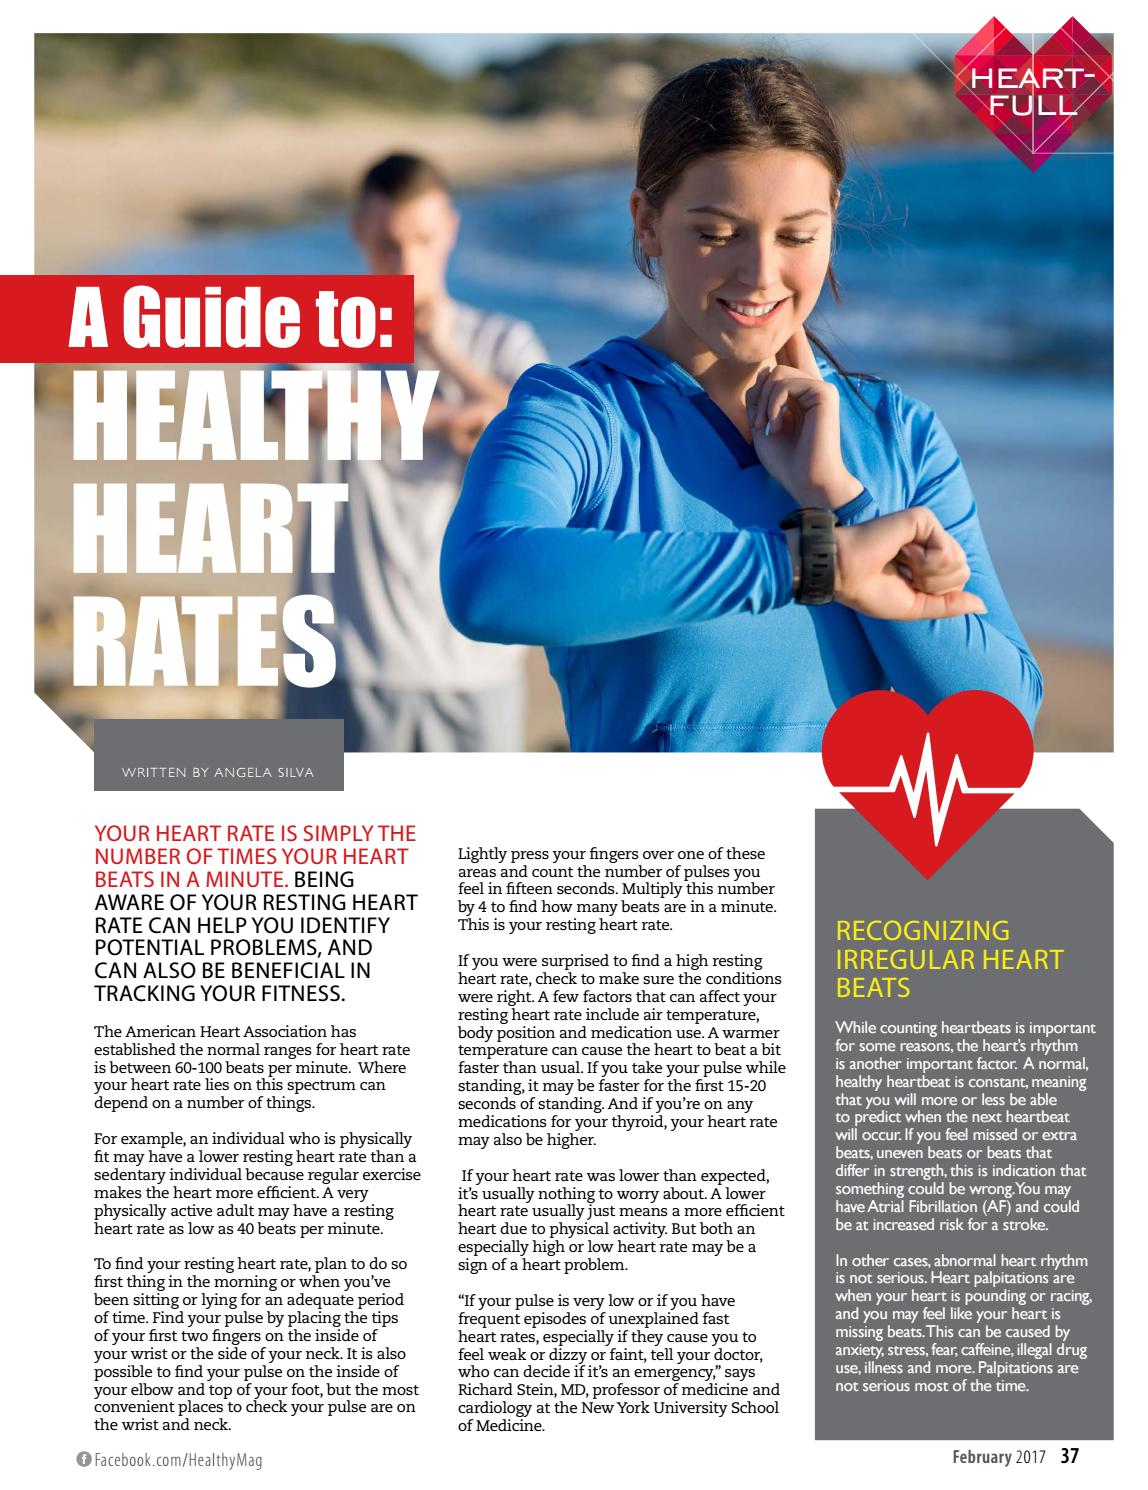 Beaches] Medications that can lower heart rate